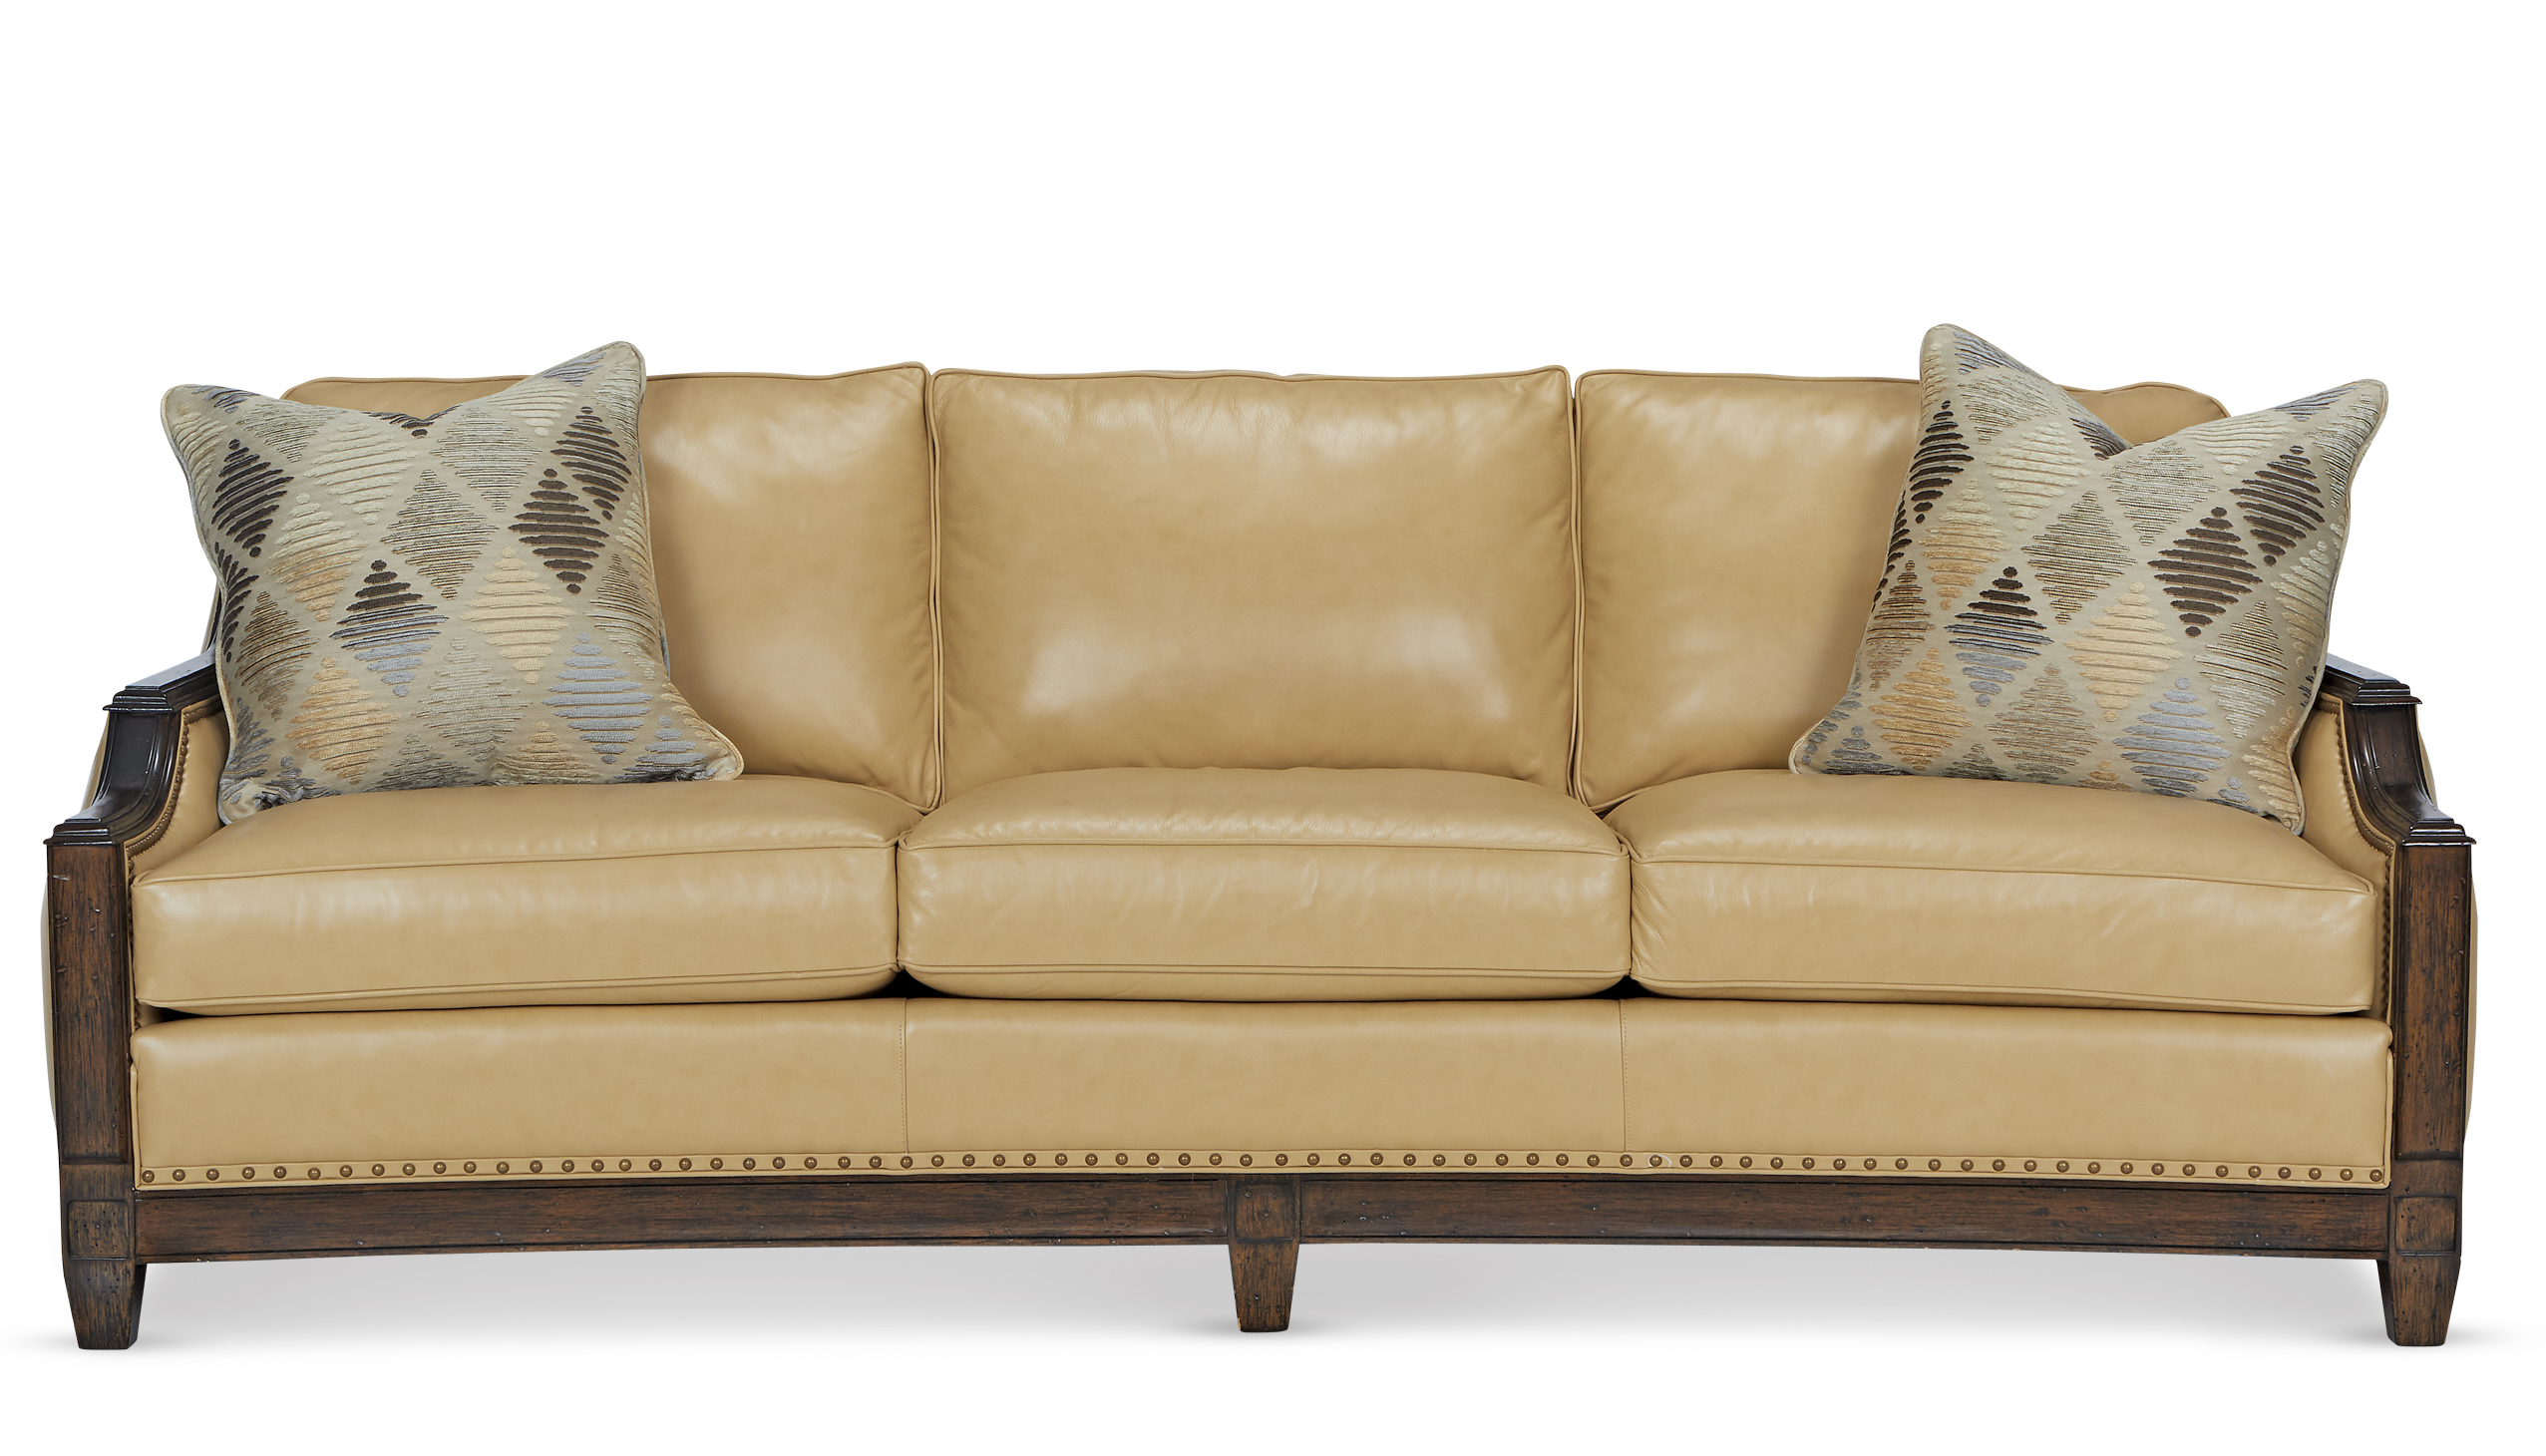 durham sofa by birch lane beds marbella spain sofas & couches sectional ikea - thesofa